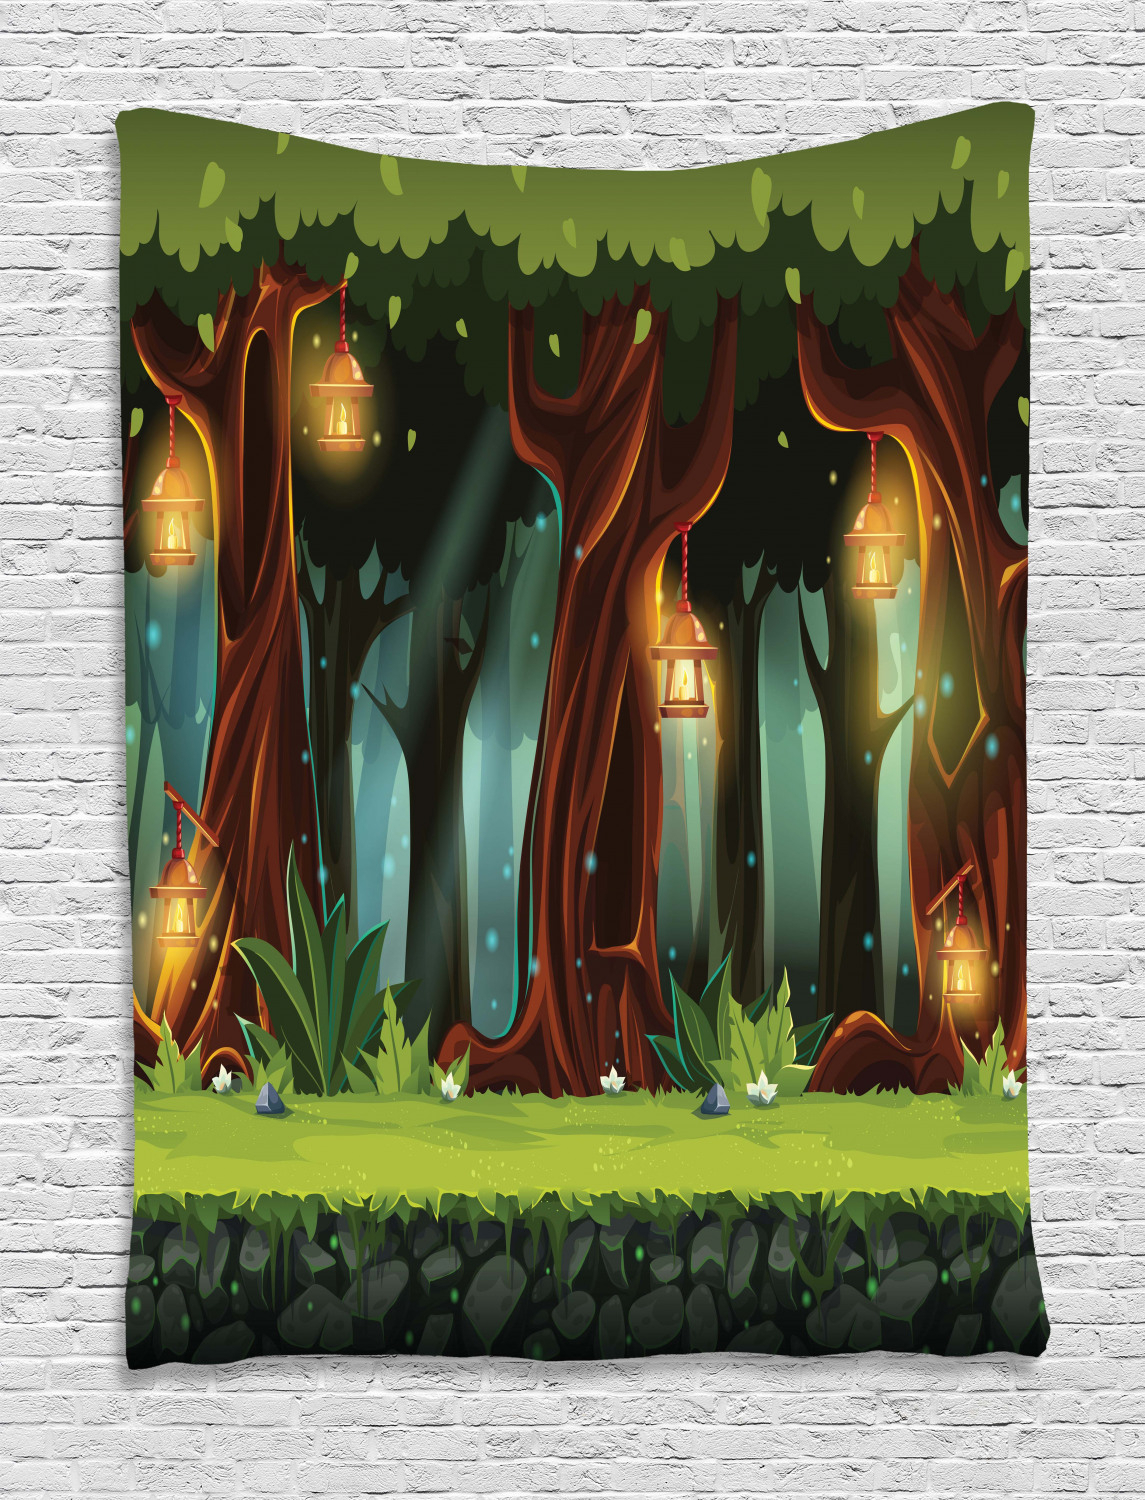 Tapestries Fairy Tale Tree House Tapestry Wall Hanging Decor Regarding Most Popular Blended Fabric Trust In The Lord Tapestries And Wall Hangings (View 14 of 20)